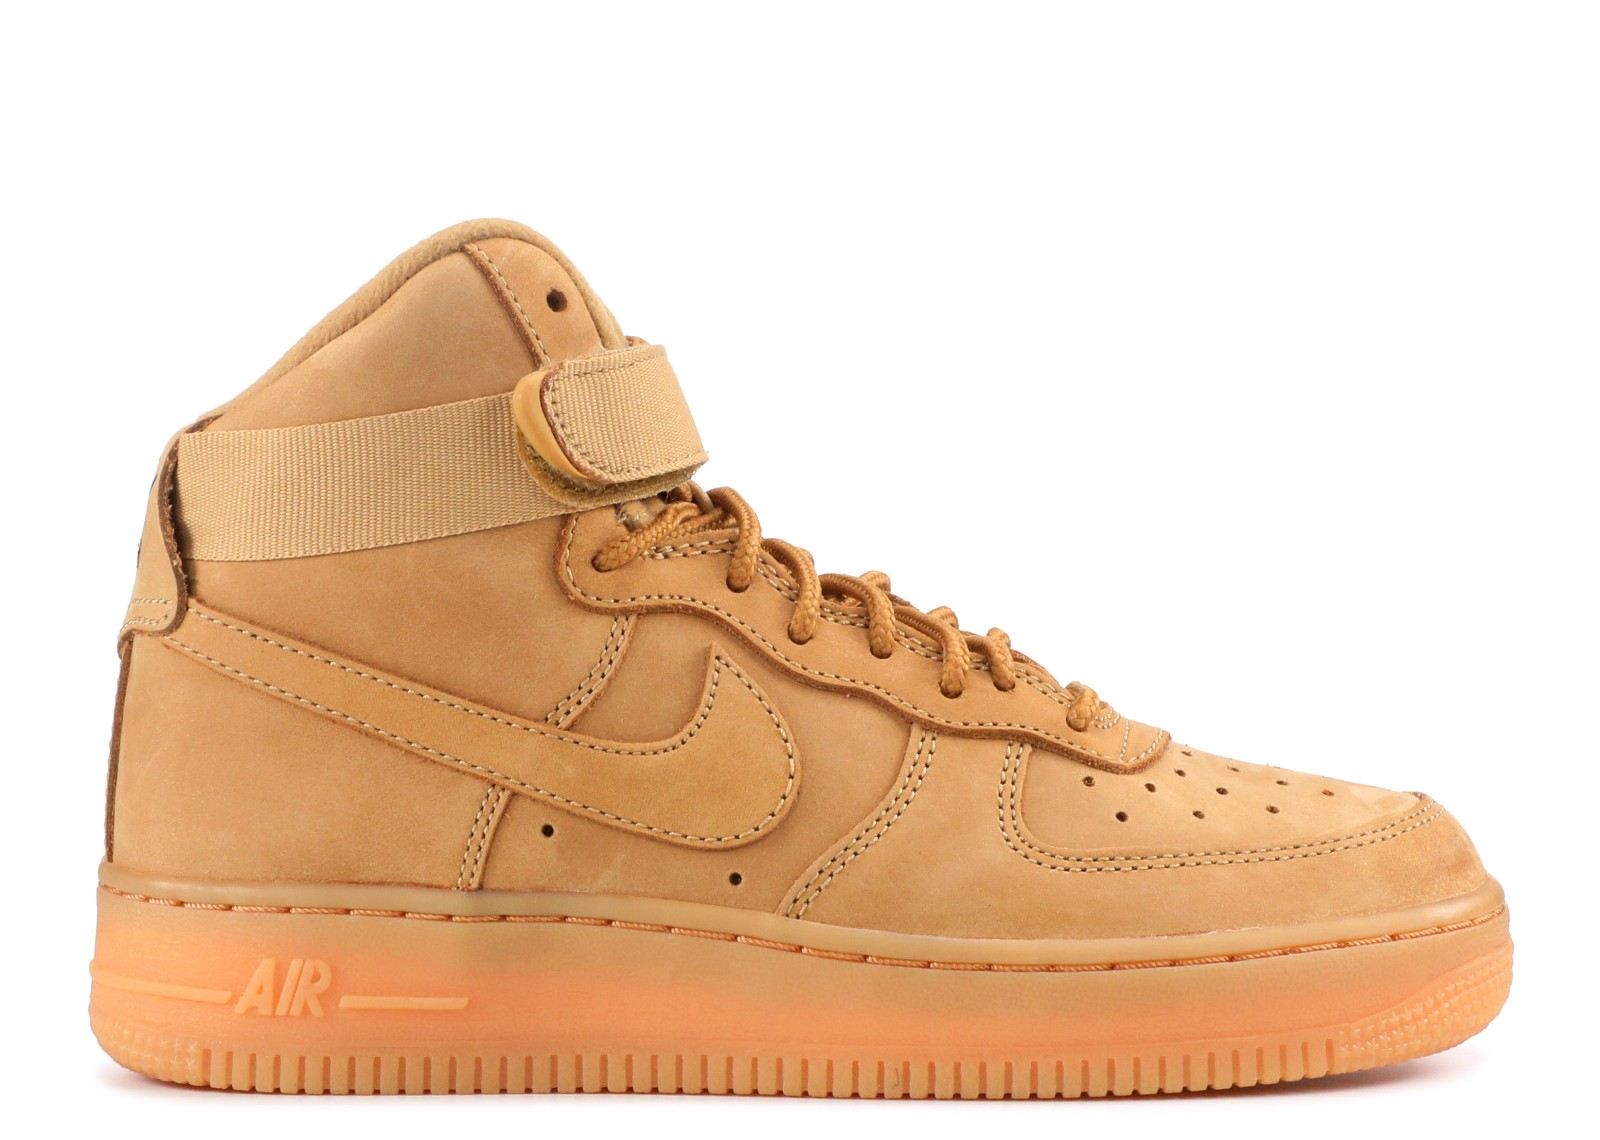 Nike Air Force 1 High LV8 Dames Bruin/Bruin/Groen 807617-200